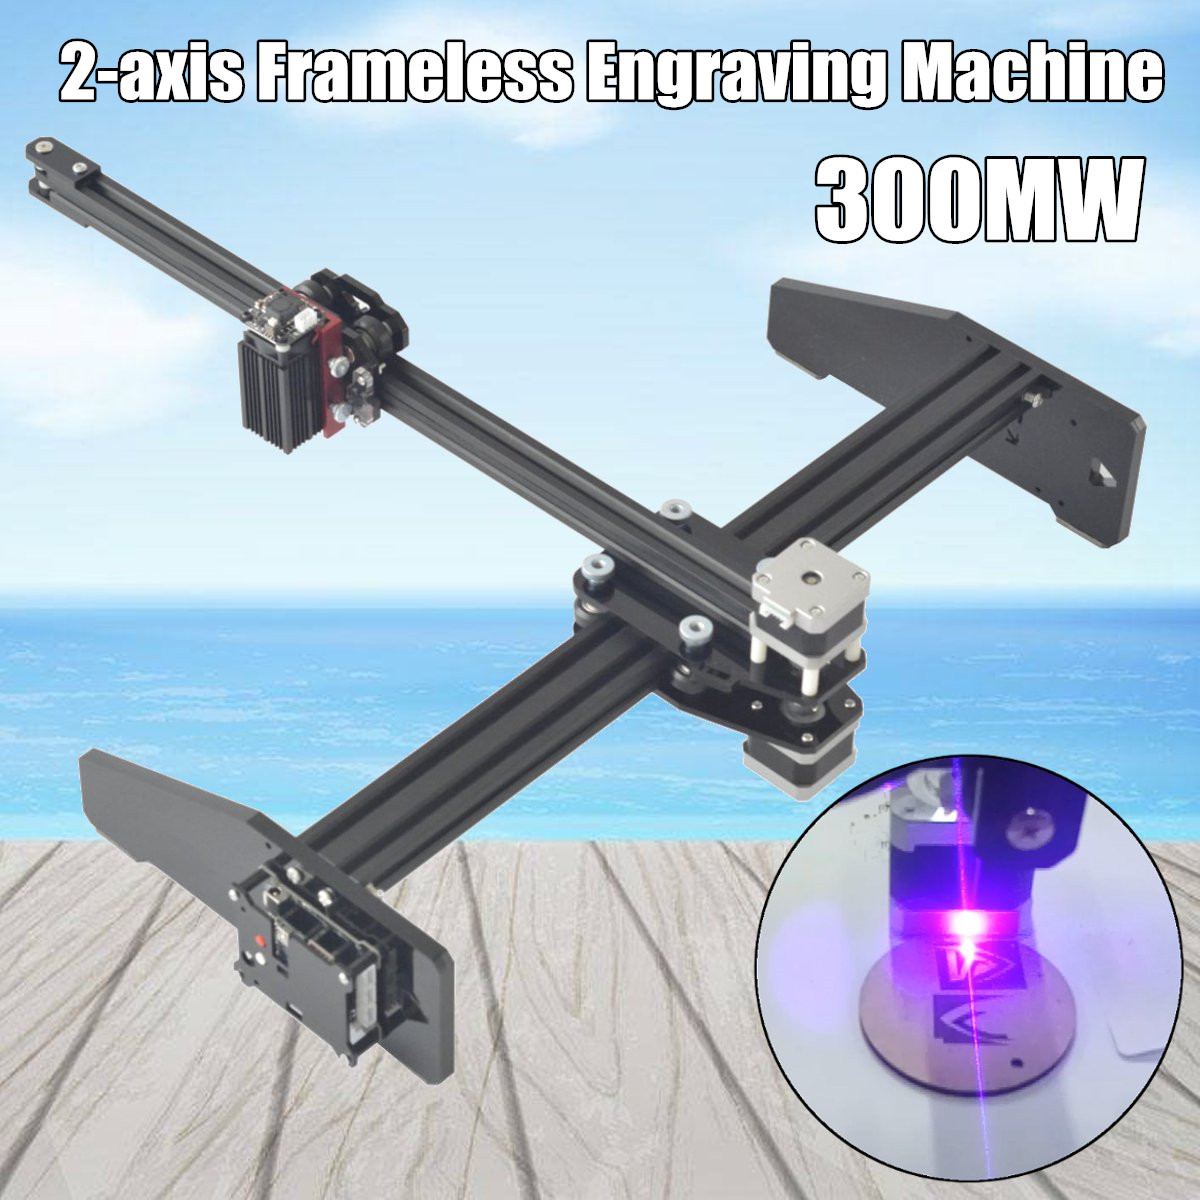 New Style 300mw 2 Axis Engraving Machine,DIY Laser Engraver Machine,Wood Router,laser Cutter,cnc Router,Woodworking Machinery